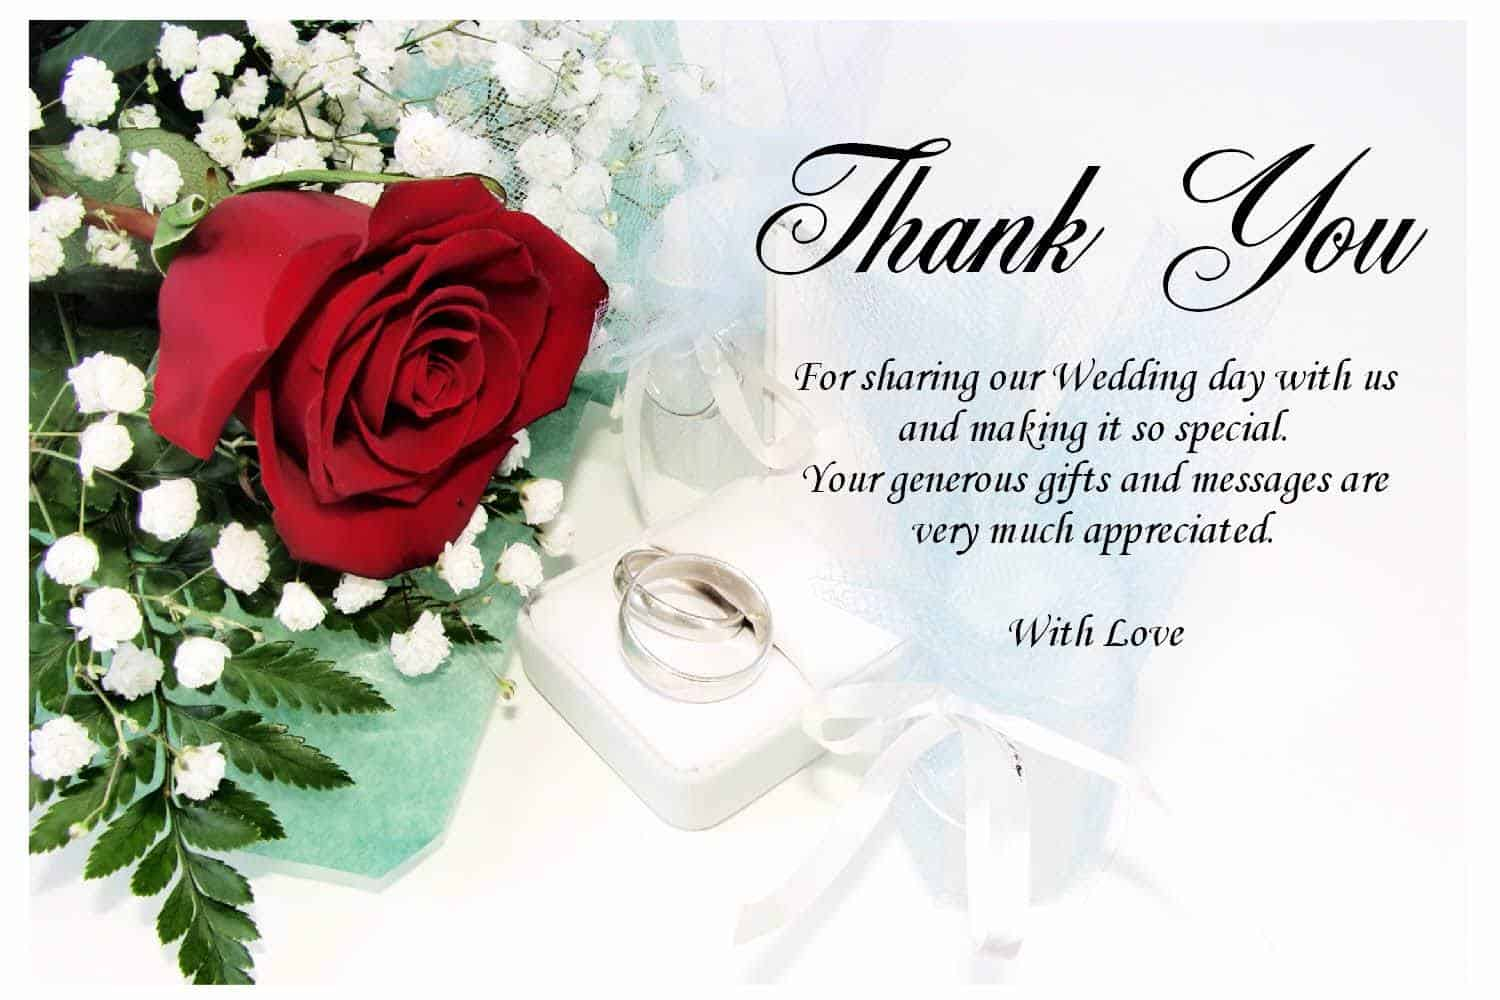 Nice Wedding Gift Message : Wedding Thank You Gifts And Messages